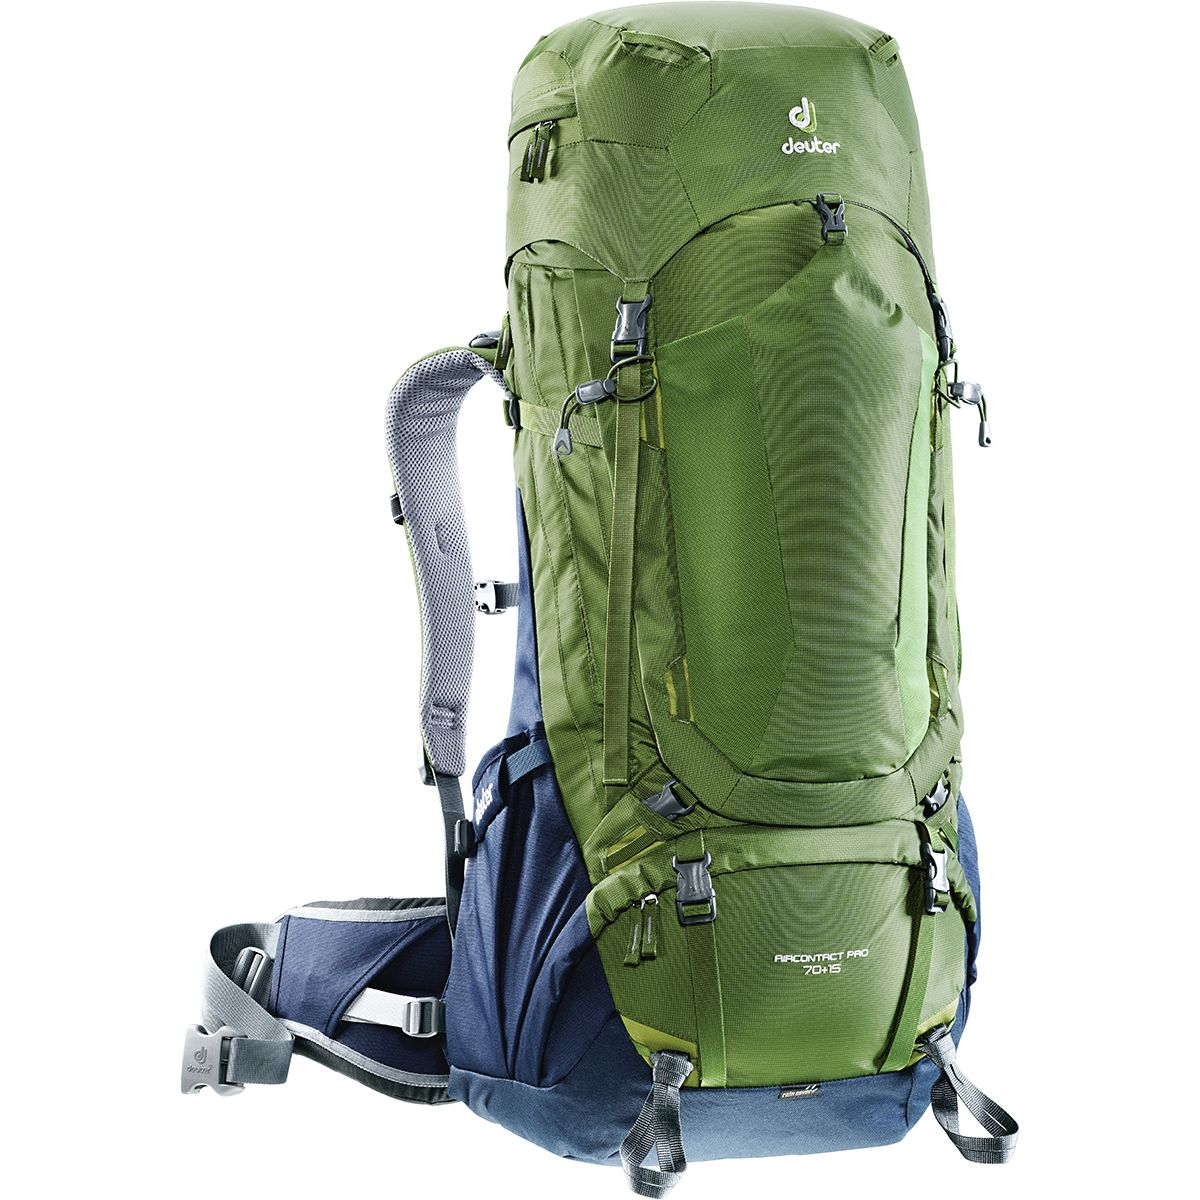 photo: Deuter Aircontact Pro 70+15 expedition pack (70l+)